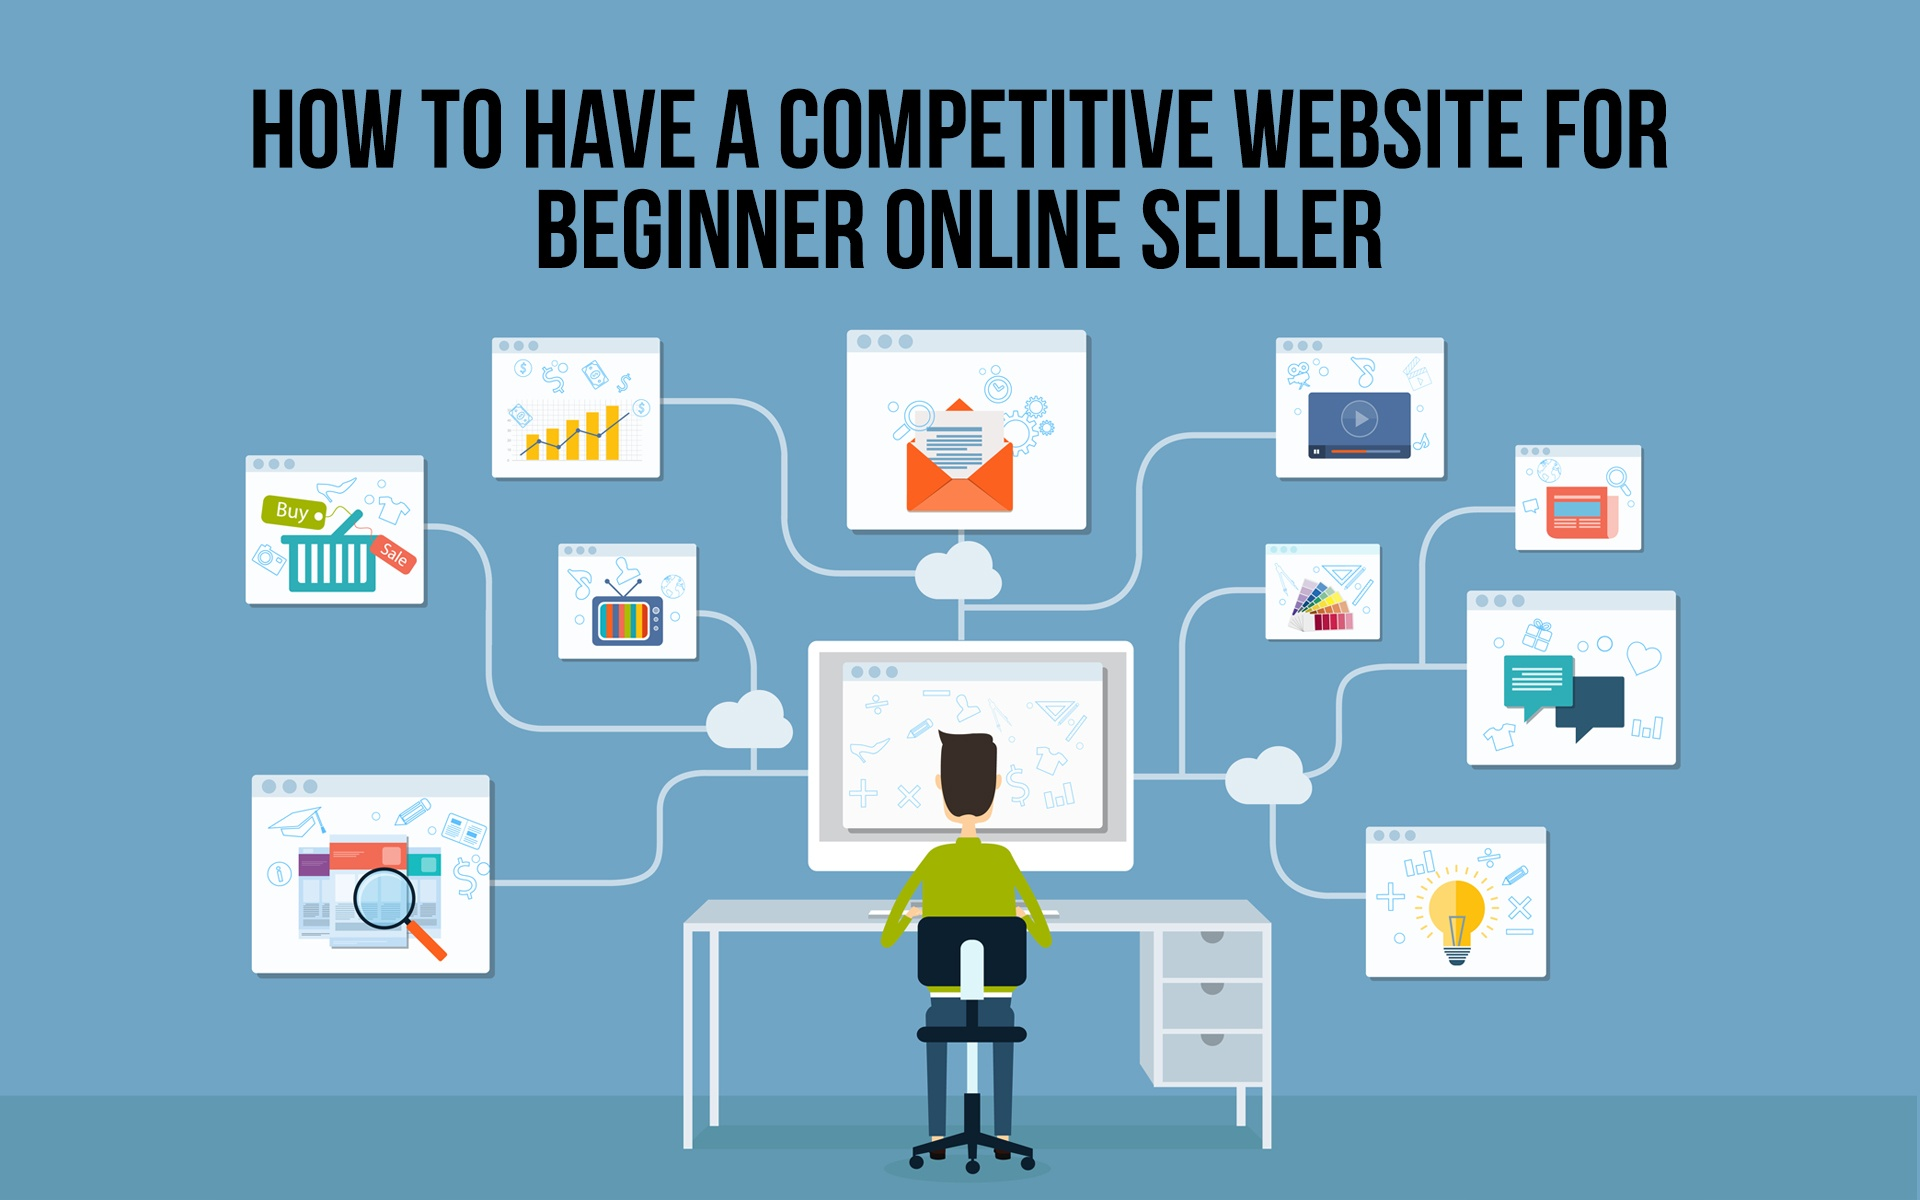 How to Have a Competitive Website for Beginner Online Seller